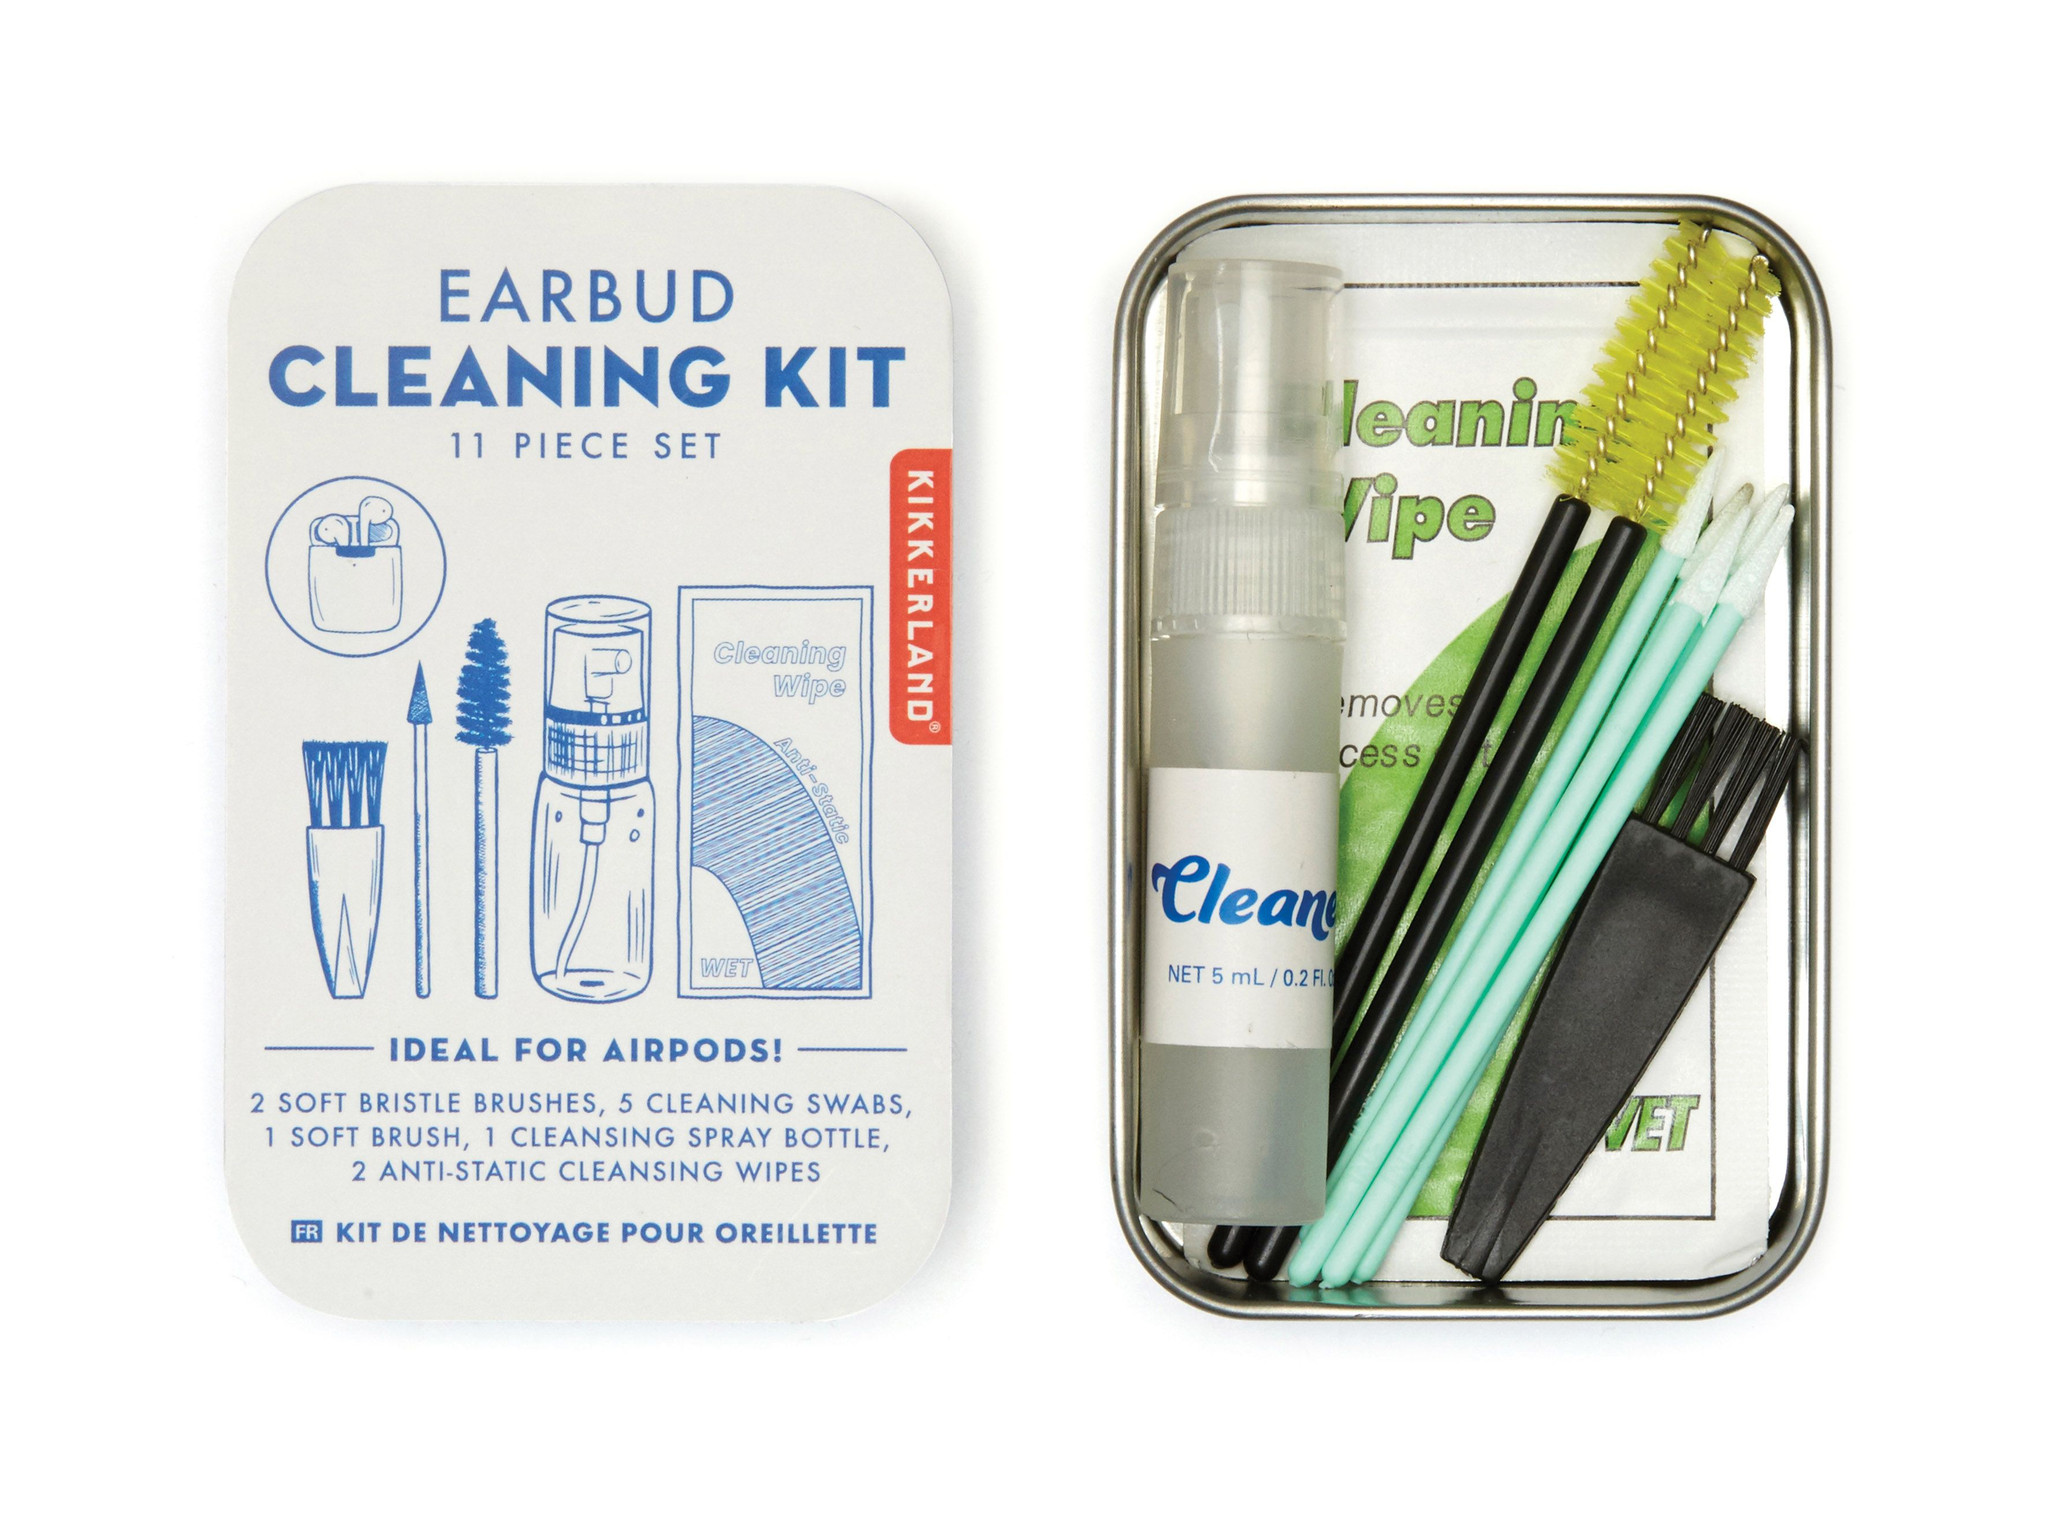 Ear Bud Cleaning Kit (11 pieces)